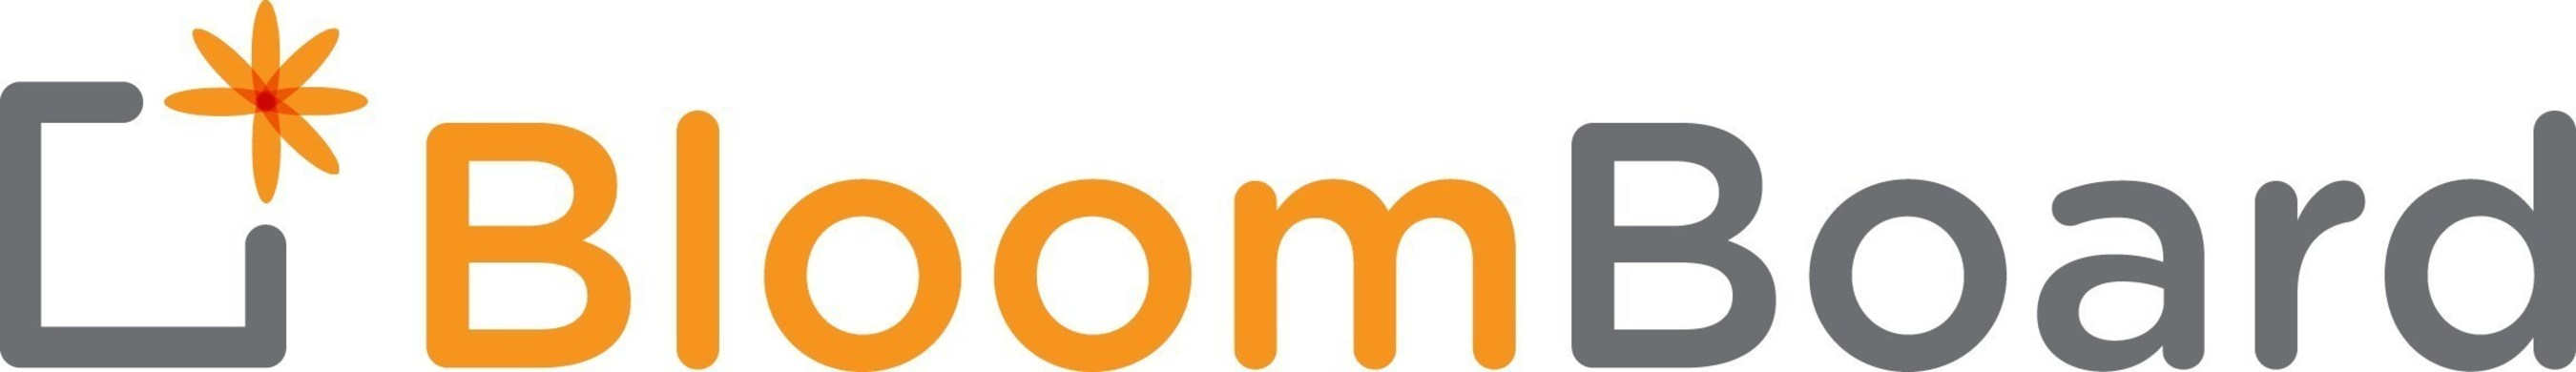 BloomBoard powers personalized learning for educators.